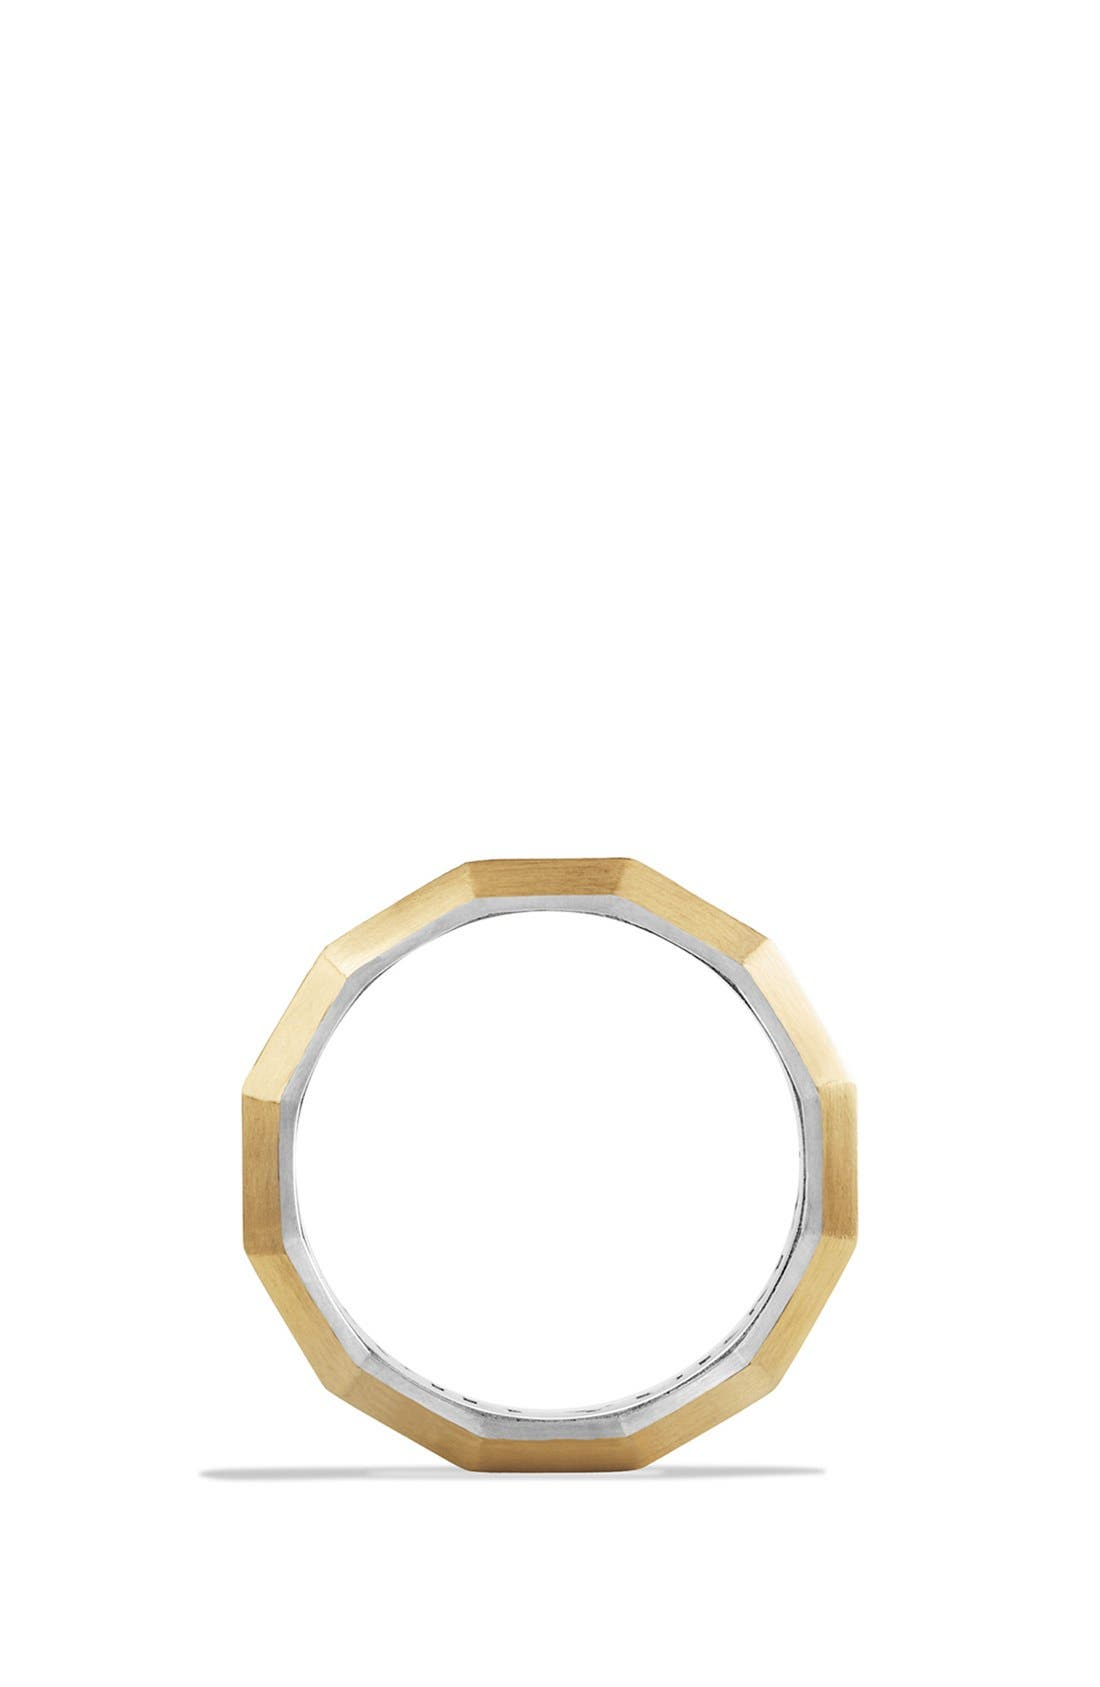 'Faceted' Metal Ring with 18k Gold,                             Alternate thumbnail 3, color,                             041